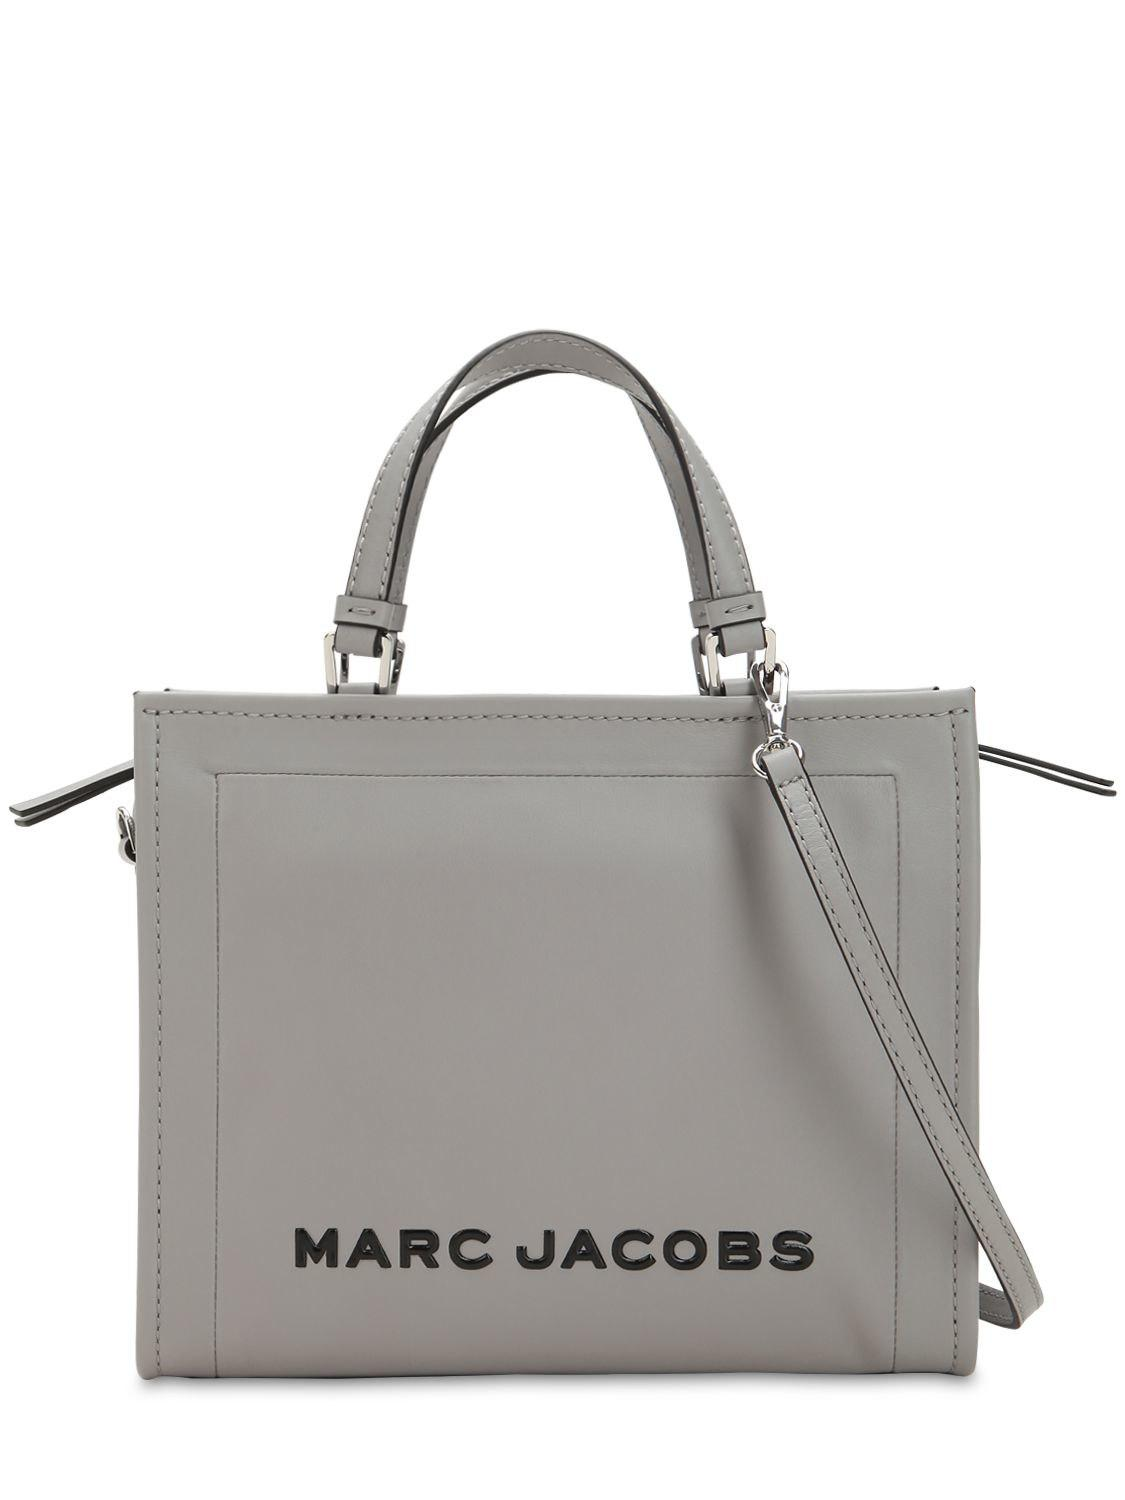 20f1ff919 Marc Jacobs The Box 29 Leather Shopper Bag in Gray - Lyst